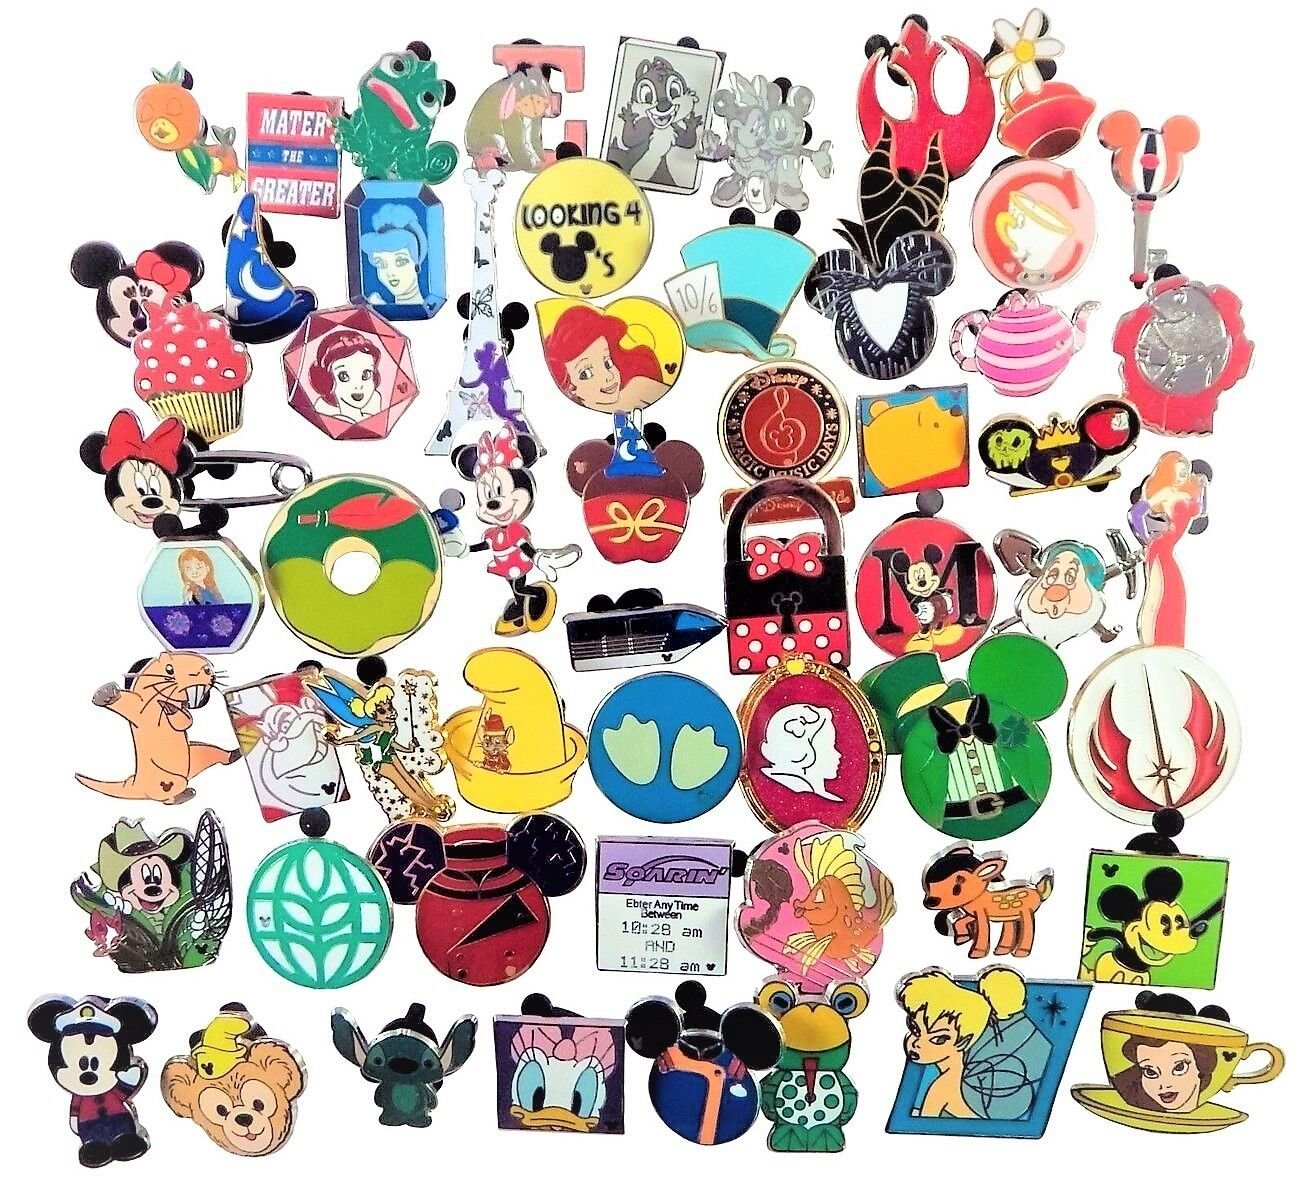 New Disney Metal and Stamped Pin Trading 100 Assorted Pin Lot - Brand New Pins - No Doubles - Tradable-by NANSY USA Seller by Unknown